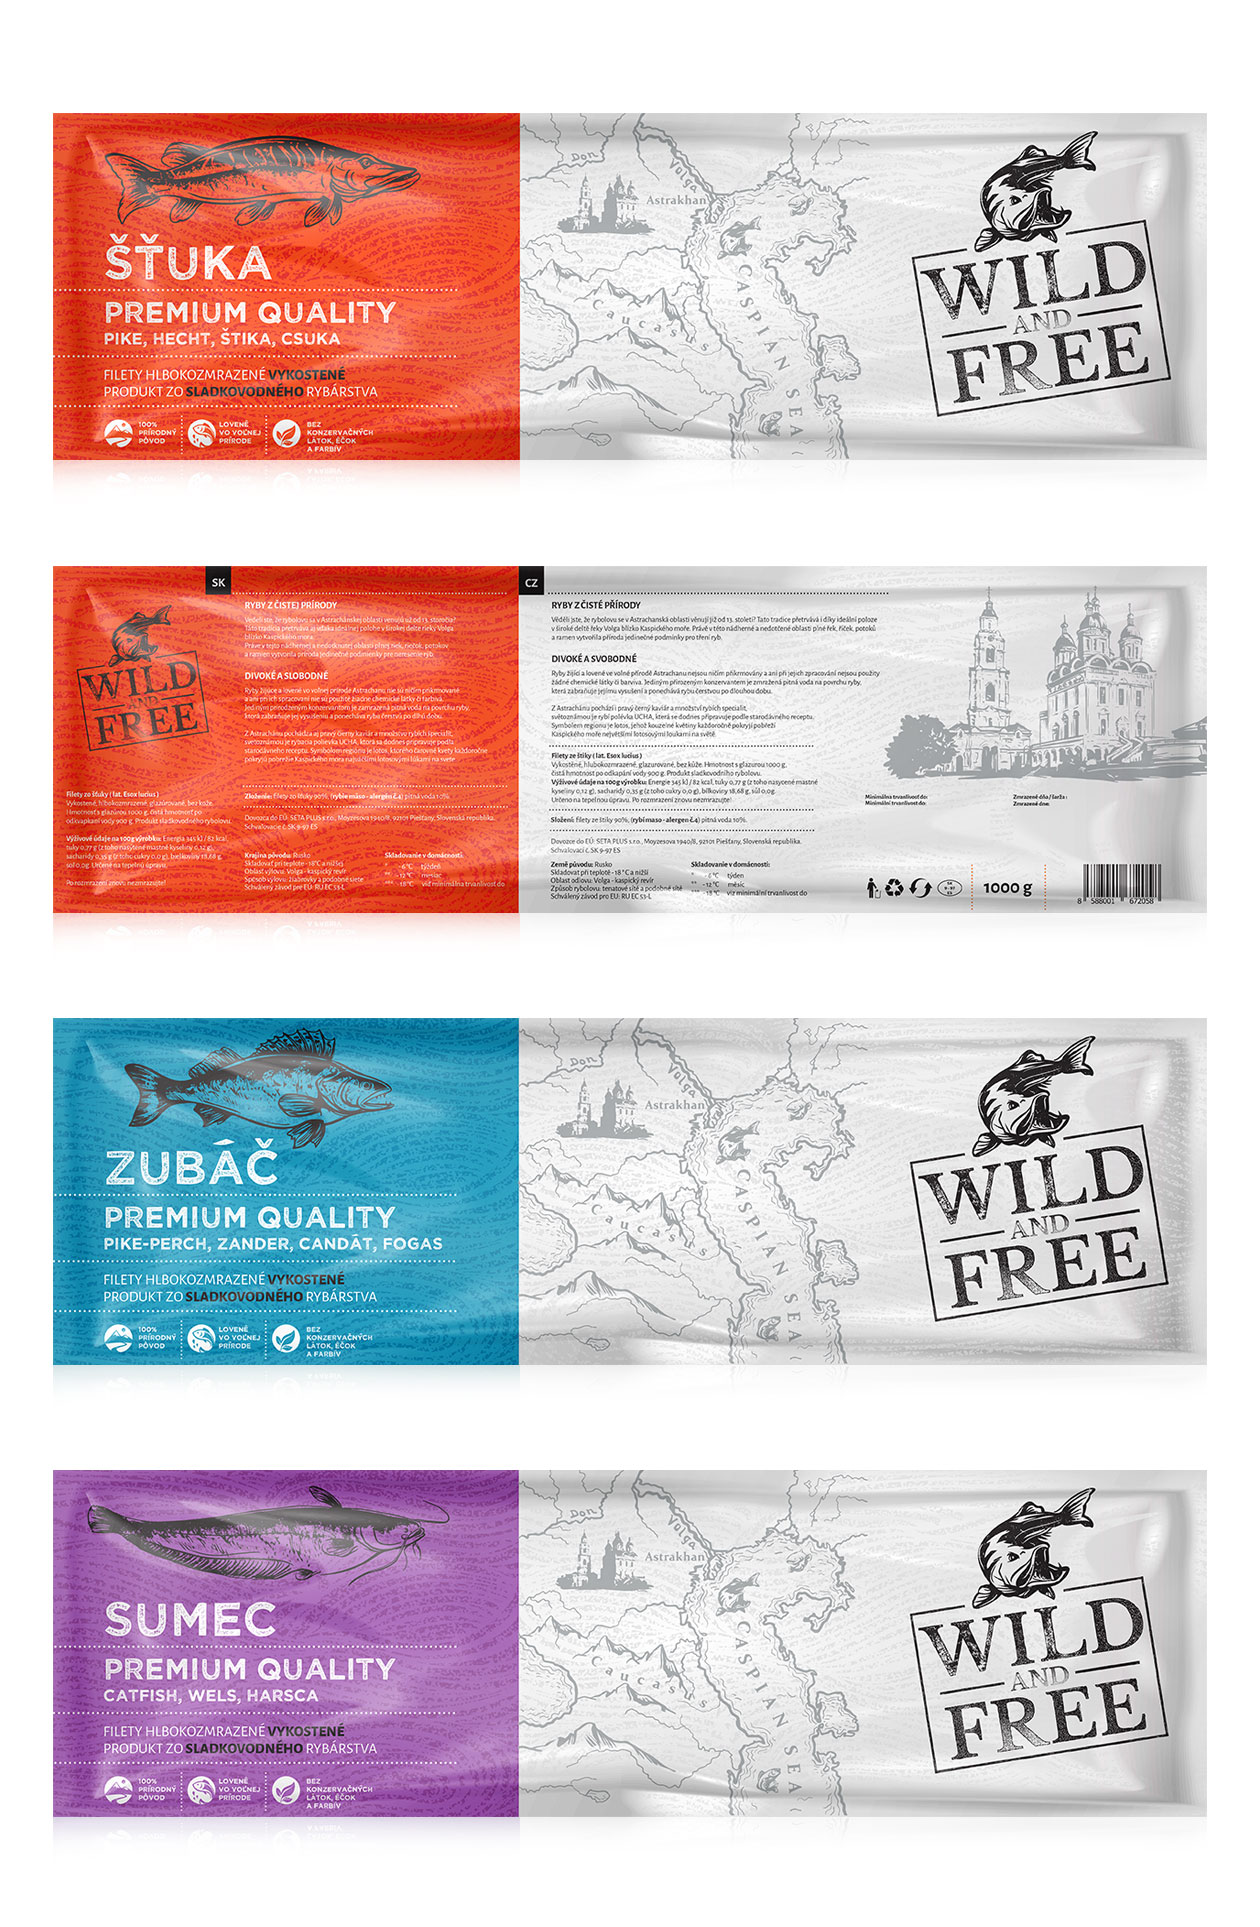 packaging Wild anf free Fish MAISON D'IDÉE